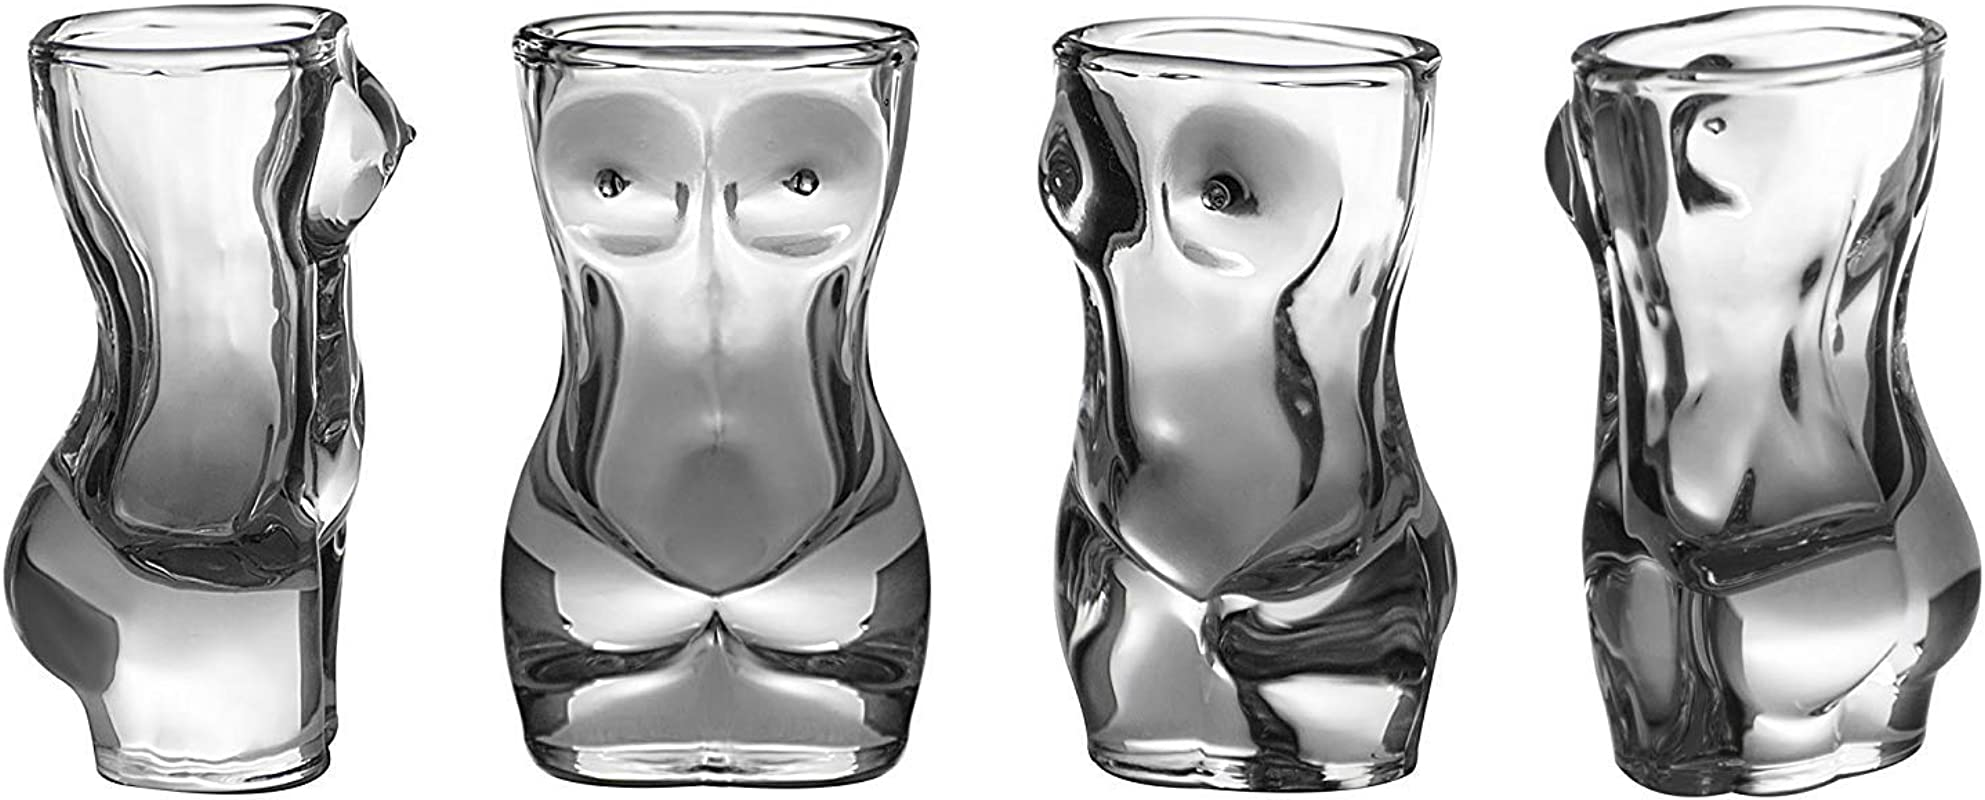 Shot Glass Set 4 Piece Set Crystal Men Women Shaped Custom Design Bachelor Or Bachelorette Party Drinks Tequila Vodka By Dopecha Clear F